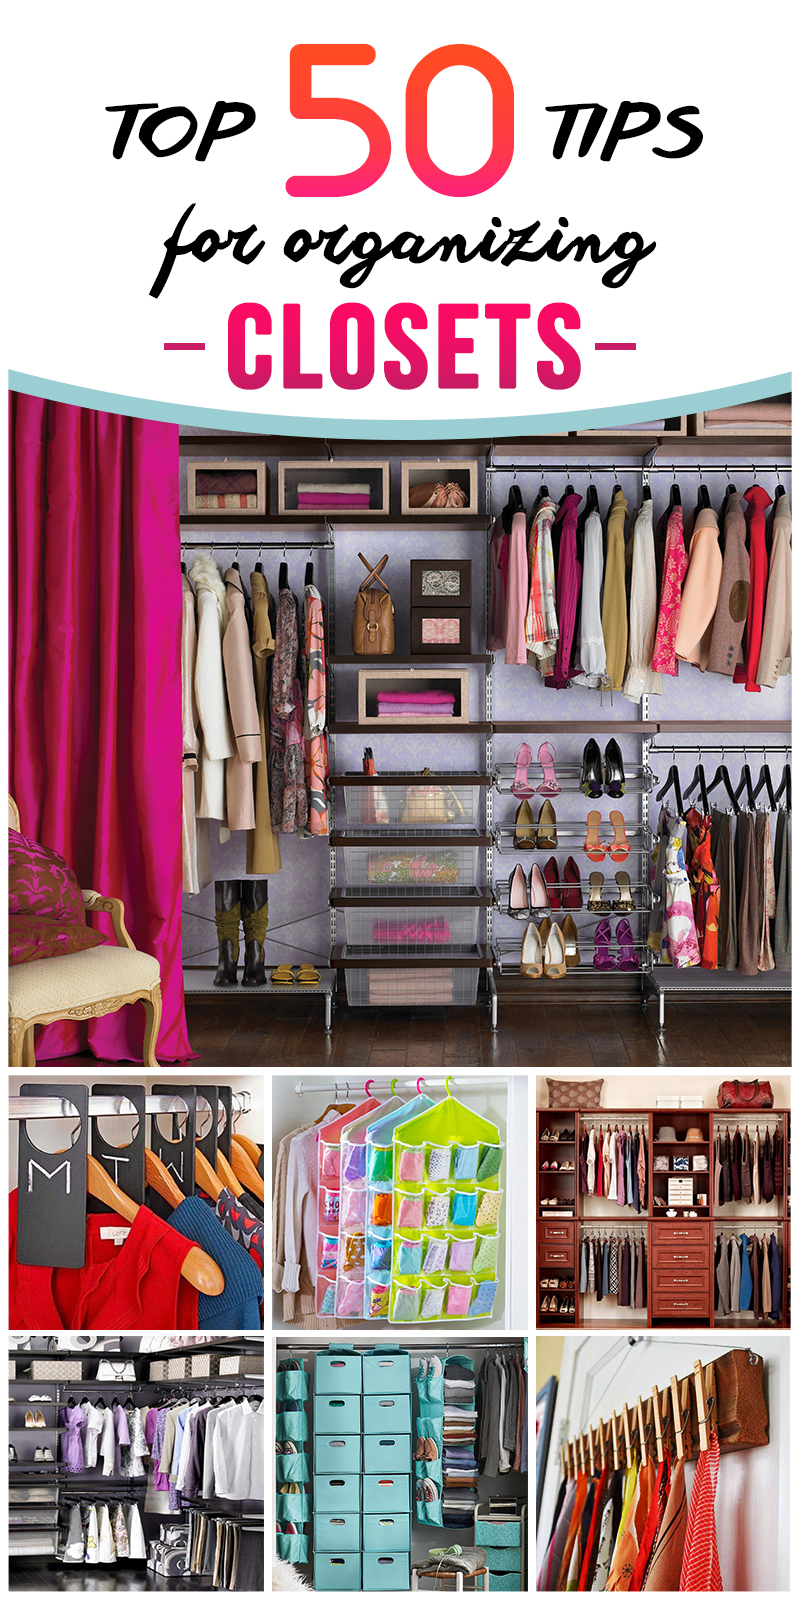 Excellent design your closet organizer roselawnlutheran for Ideas to organize closets